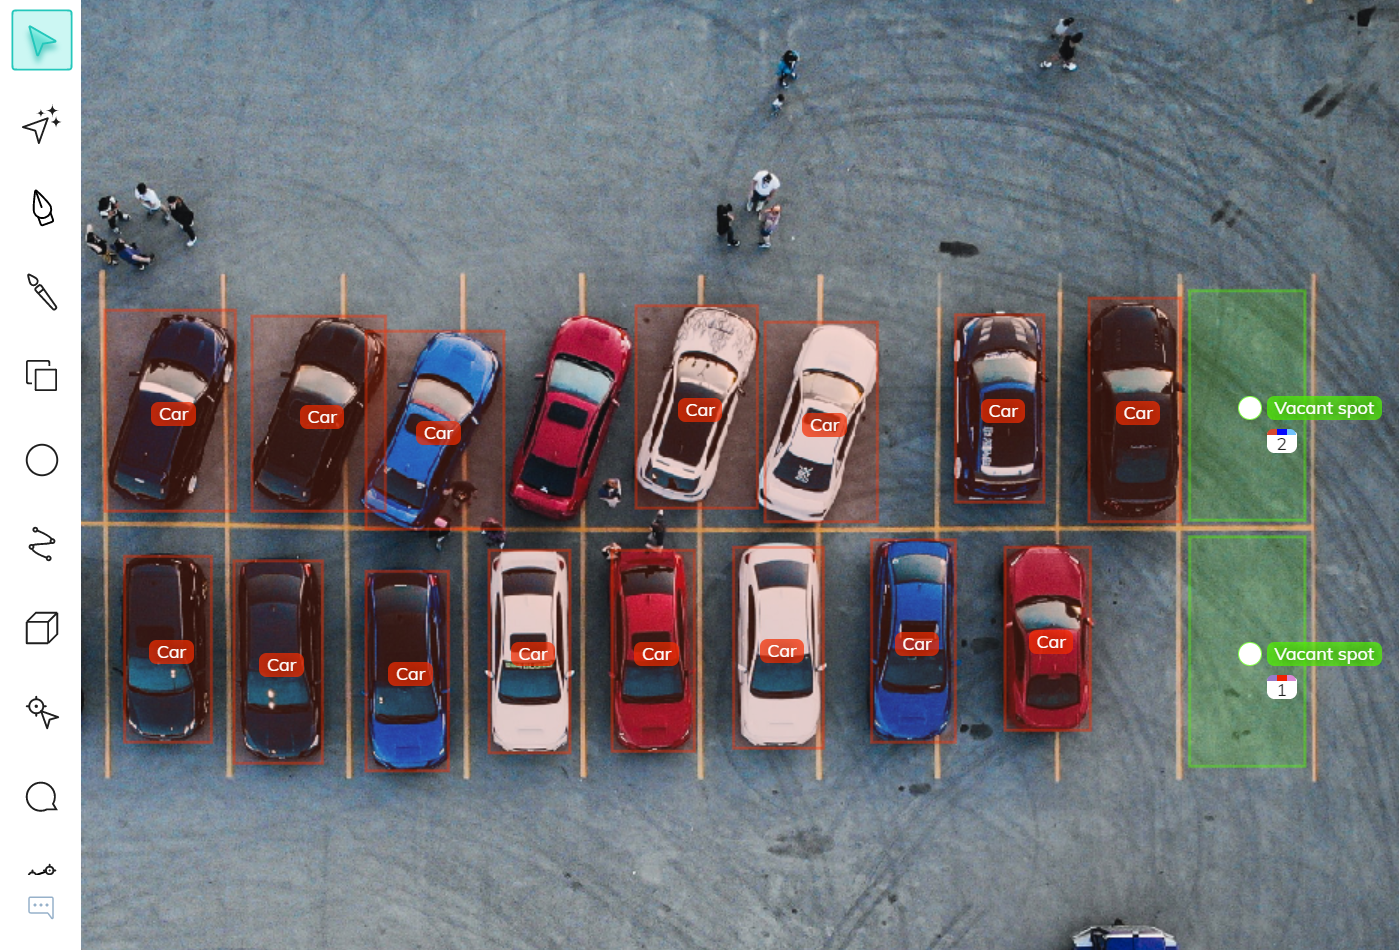 Bounding box annotations of cars and vacant parking spots for parking occupancy detection